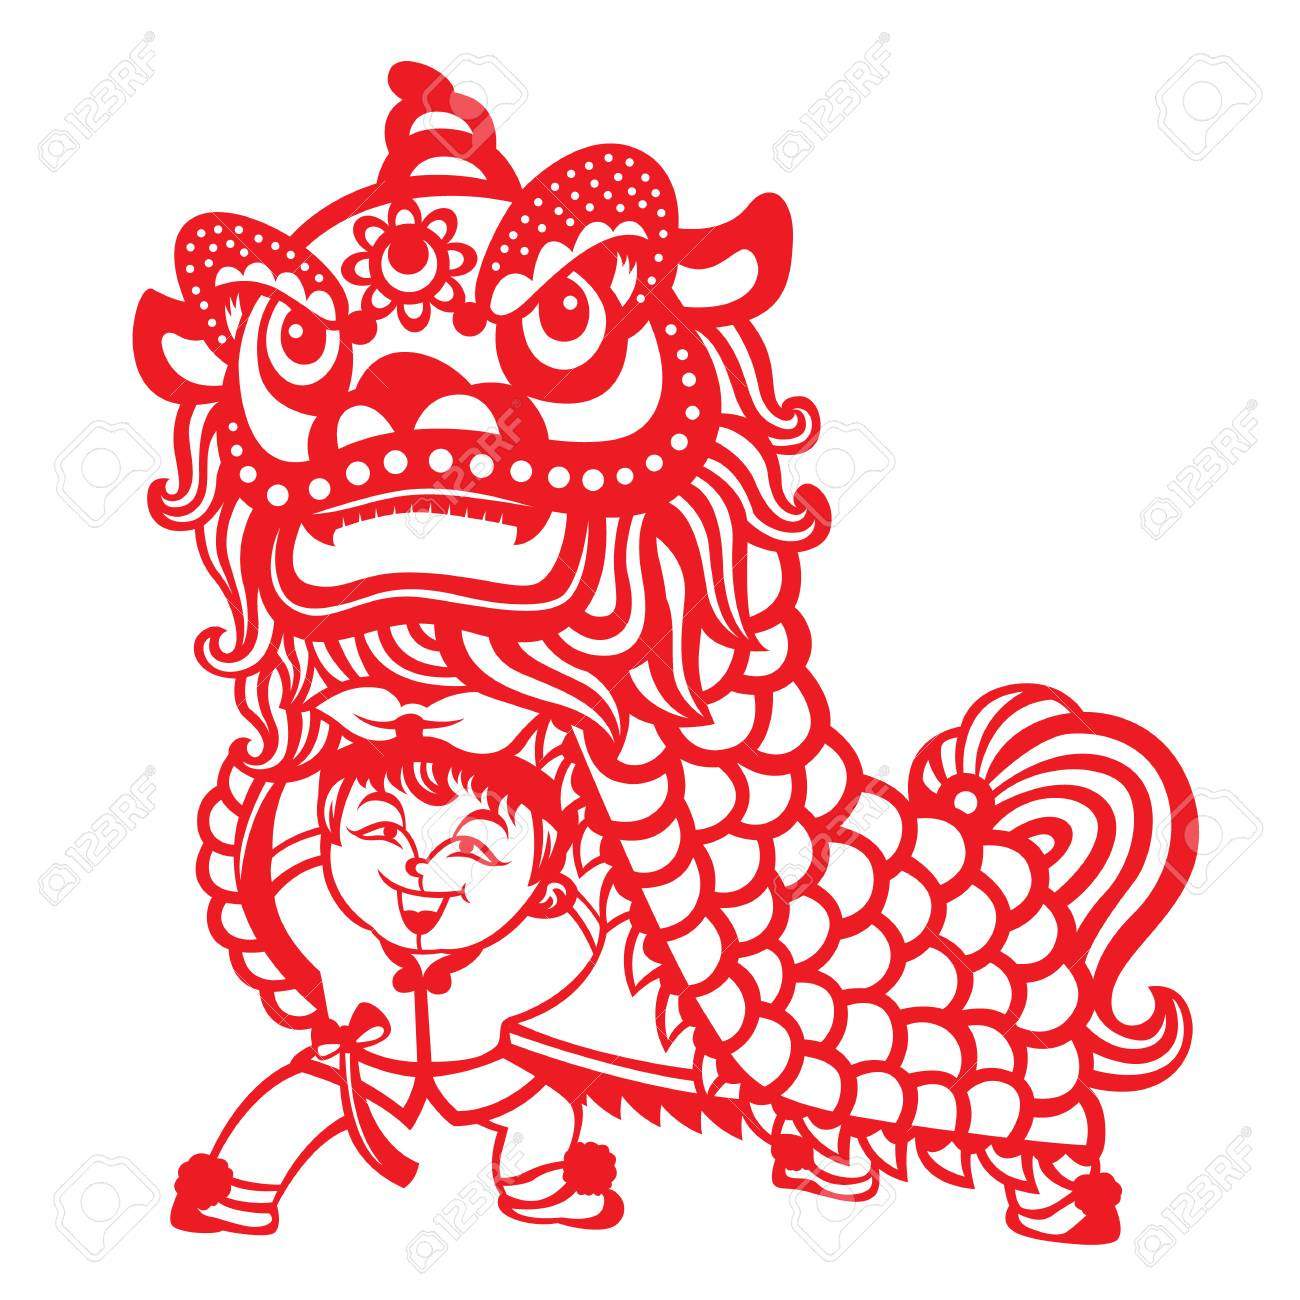 Red paper cut china lion dance by chinese kids boy vector art design - 85507835